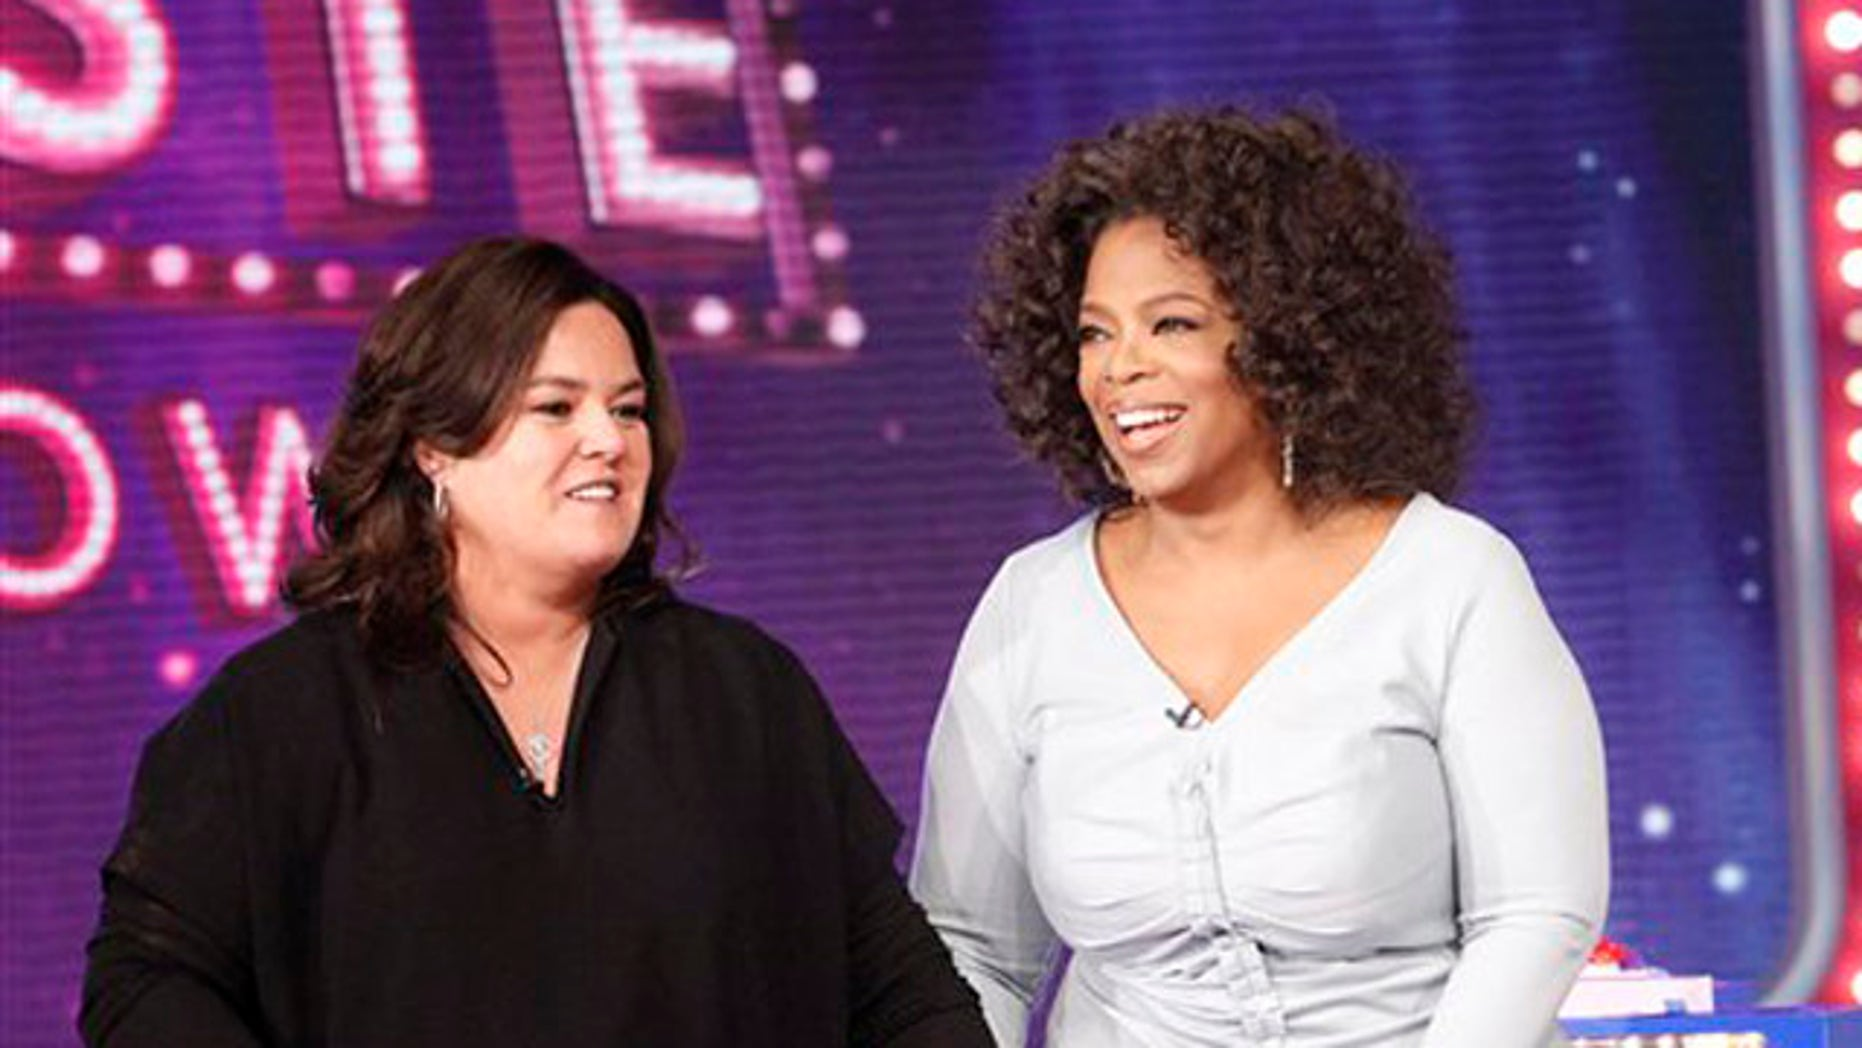 """Oct. 10, 2011: In this file image released by Harpo, Inc., Oprah Winfrey, right, is shown with host Rosie O'Donnell during the debut of """"The Rosie Show"""" in Chicago."""